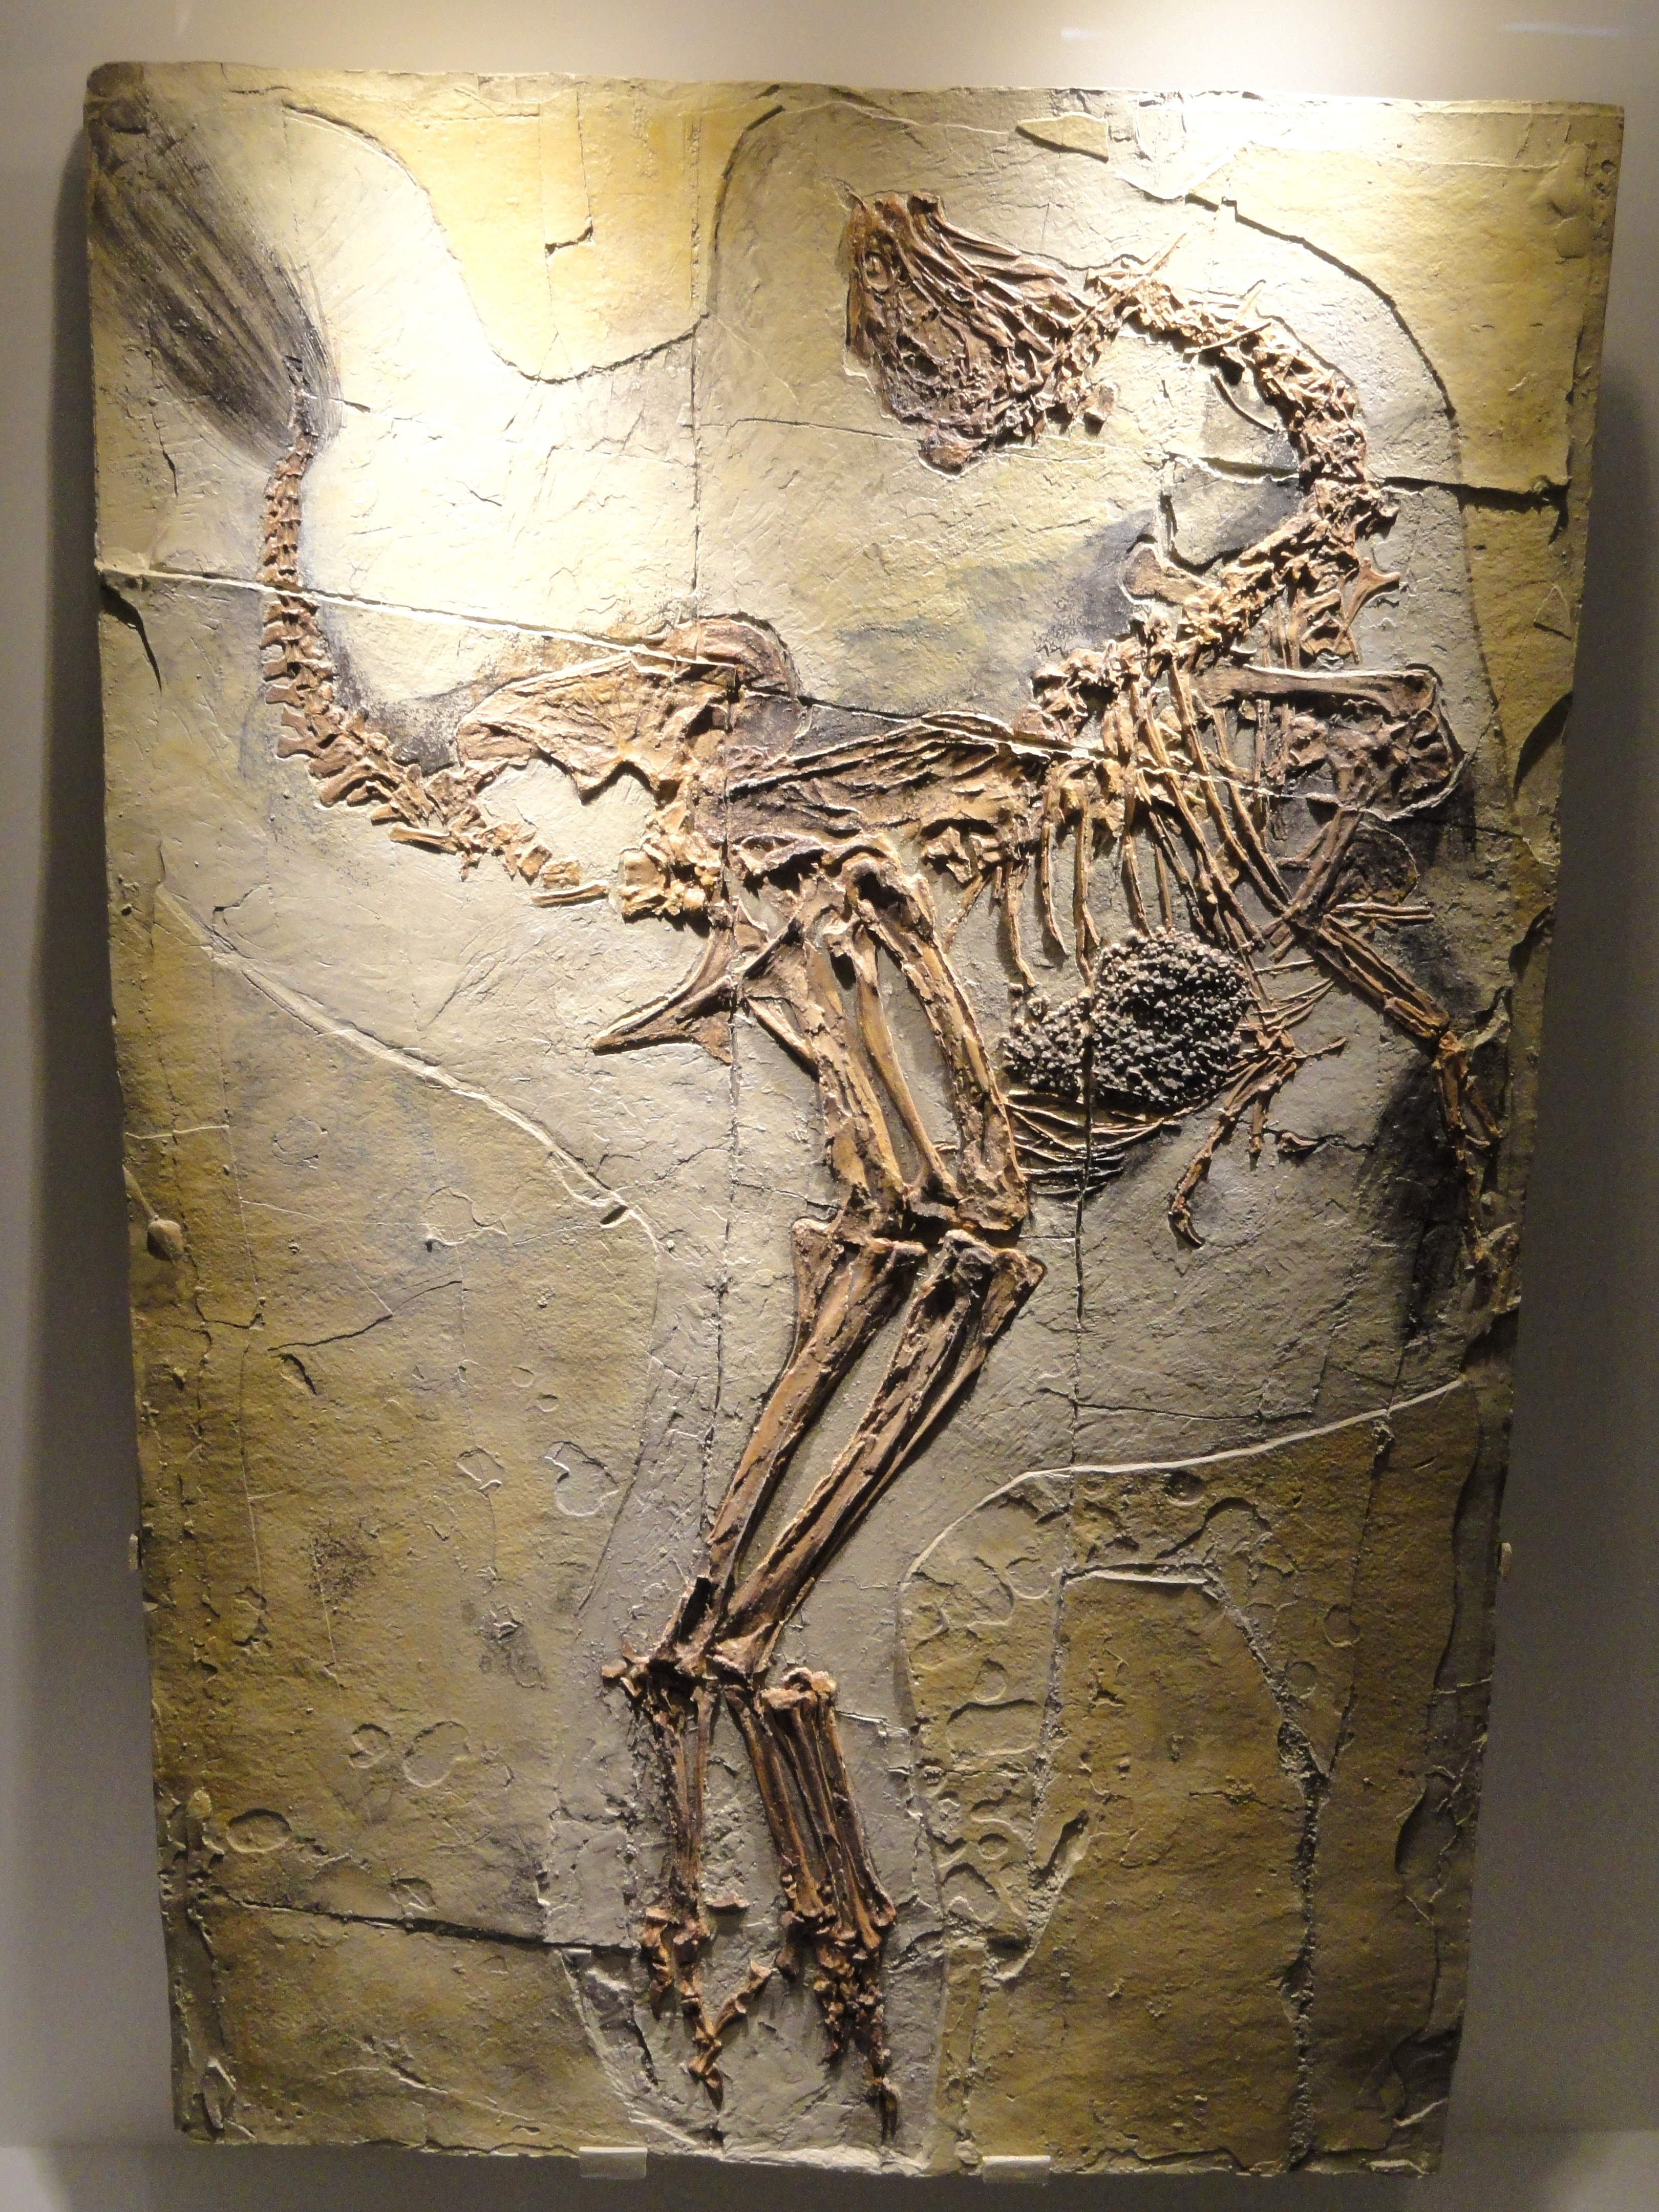 caudipteryx_zoui_feathered_dinosaur_plate_early_cretaceous_yixian_formation_liaoning_china_houston_museum_of_natural_science_dsc01866.JPG